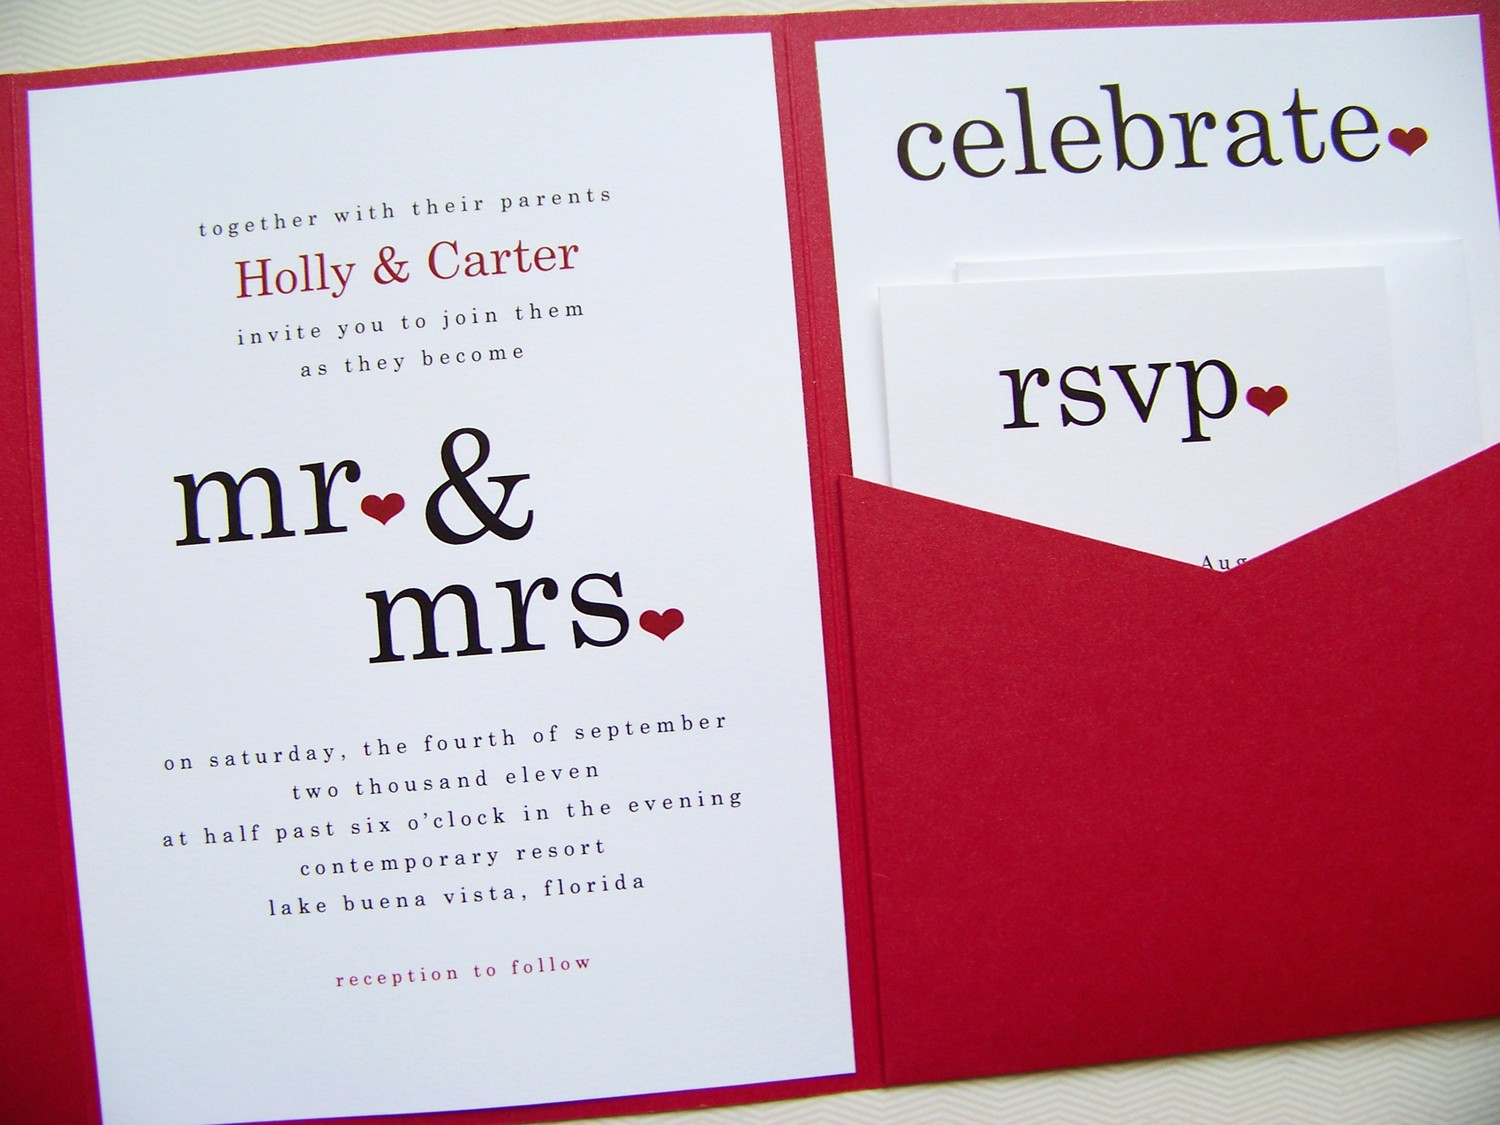 Wedding Card Invitation Messages: Do It Yourself Wedding Invitations Ideas